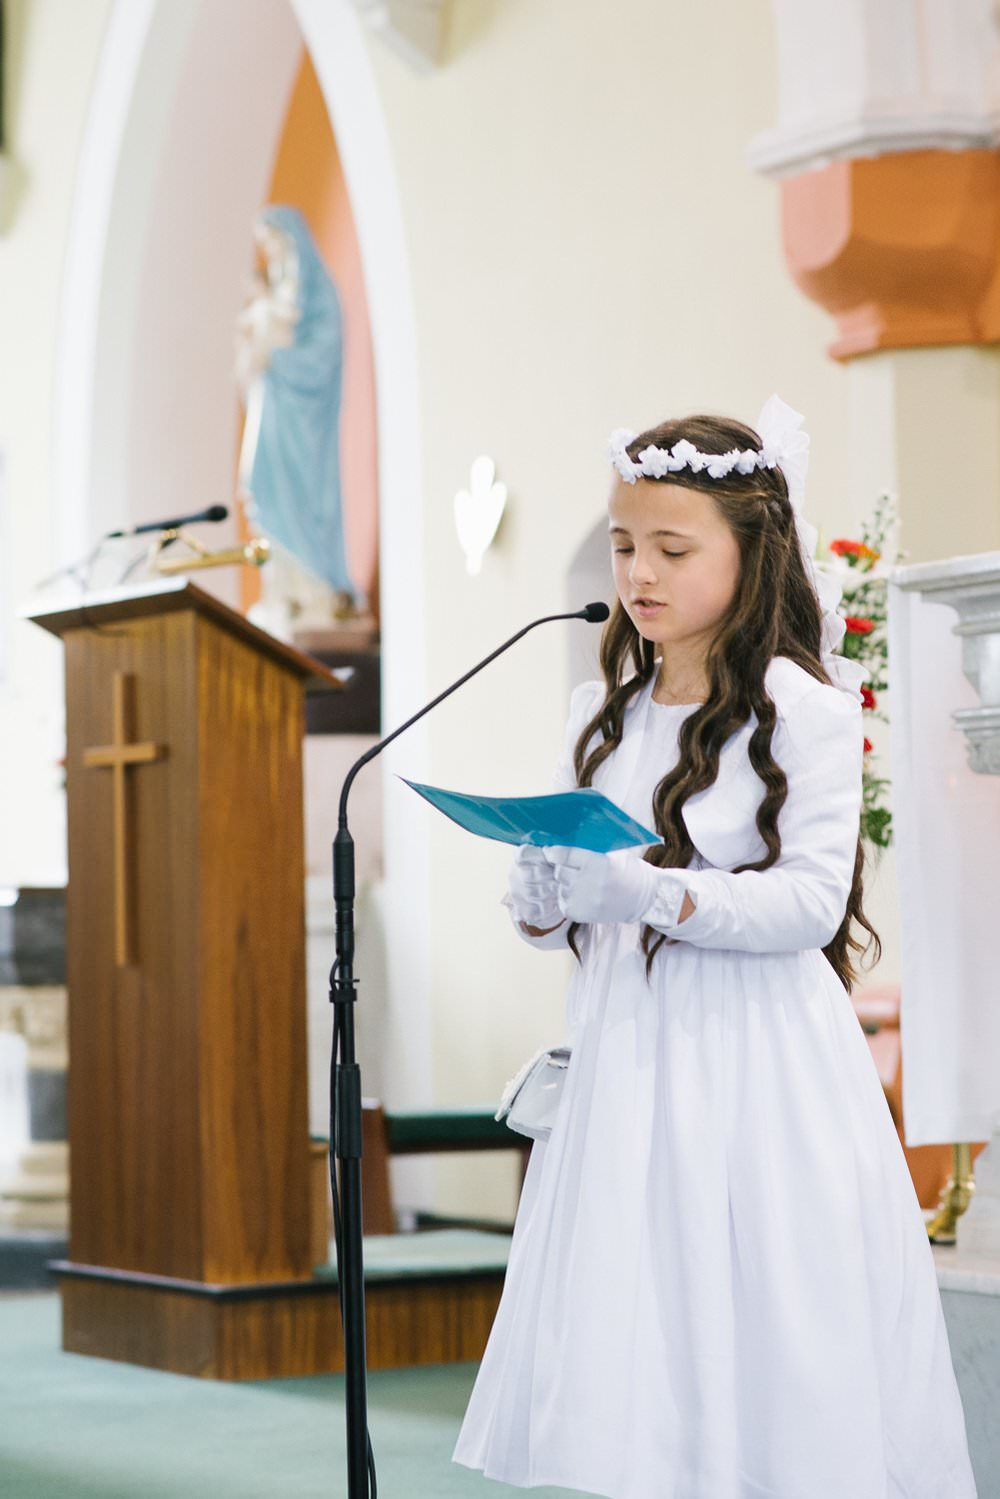 20150510 DSC 0625 - Abigail's First Holy Communion